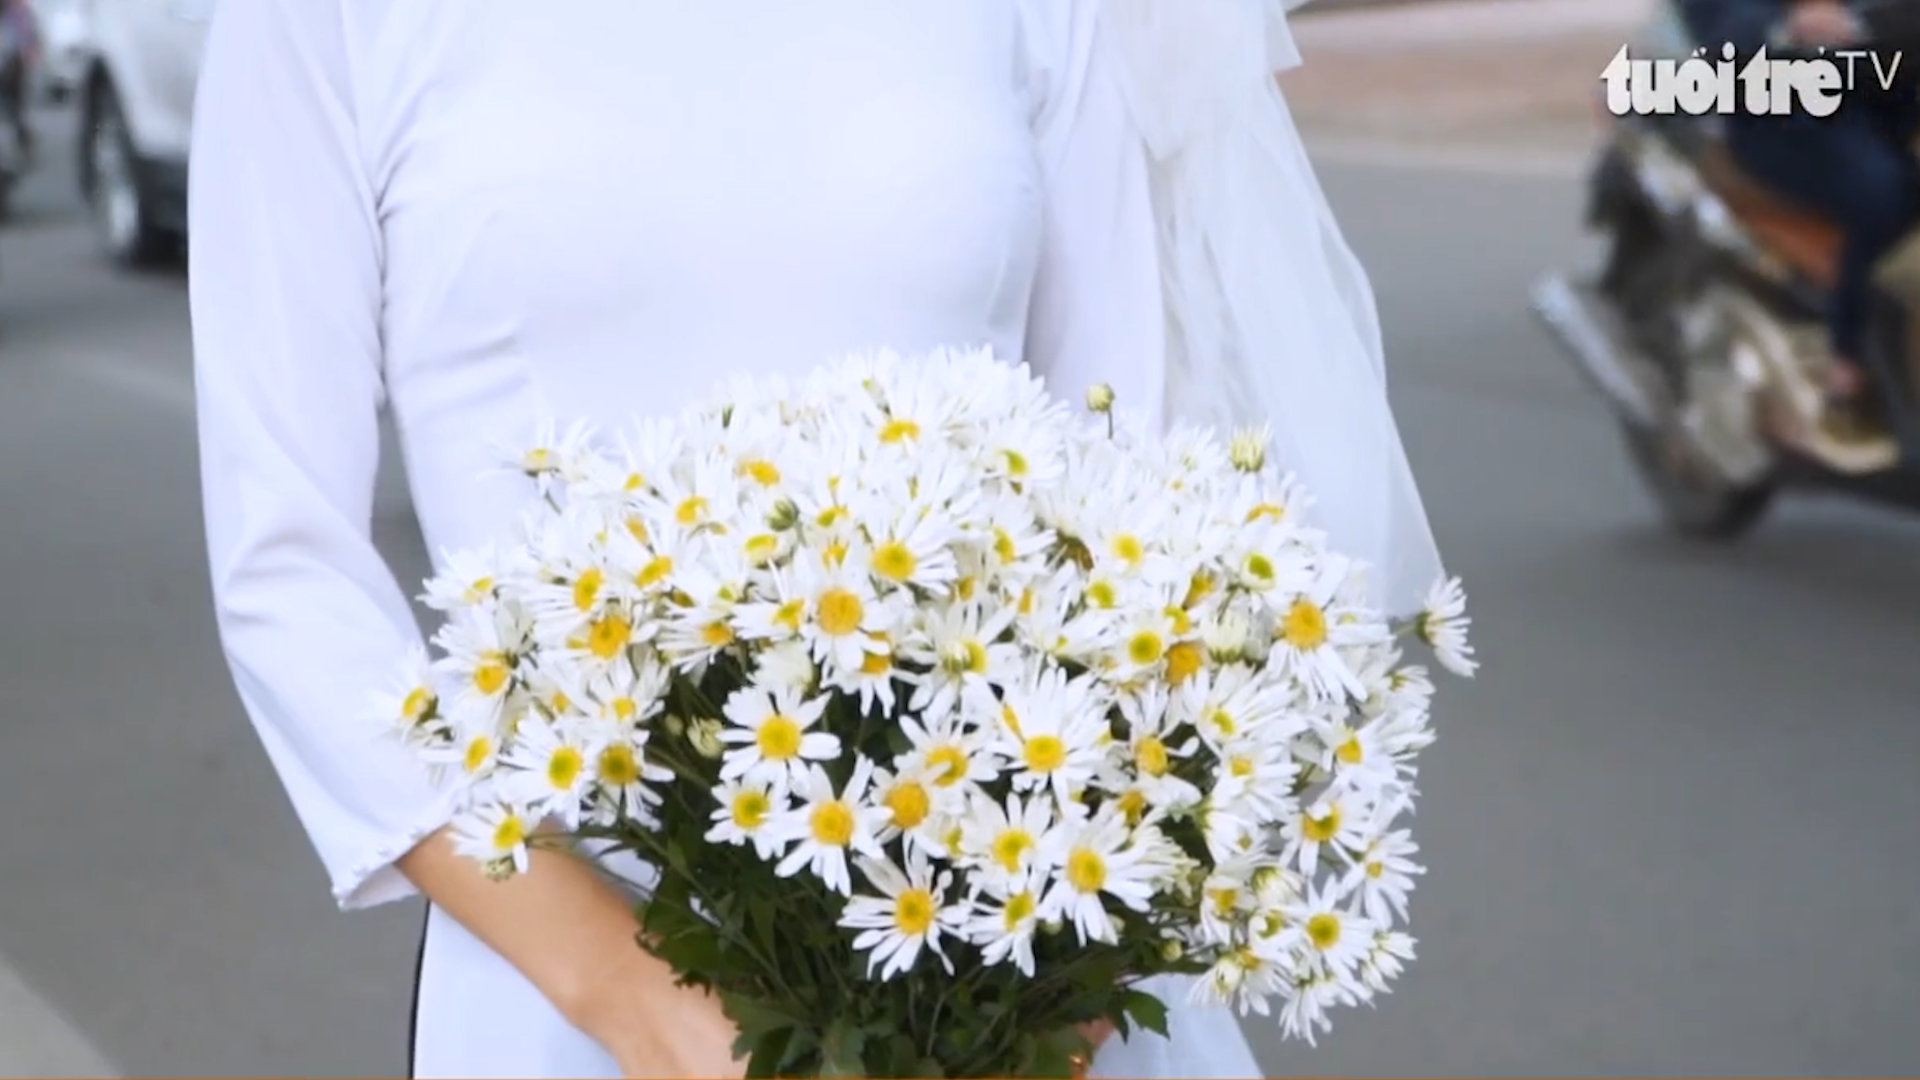 Hanoi's streets are covered by pure white daisies